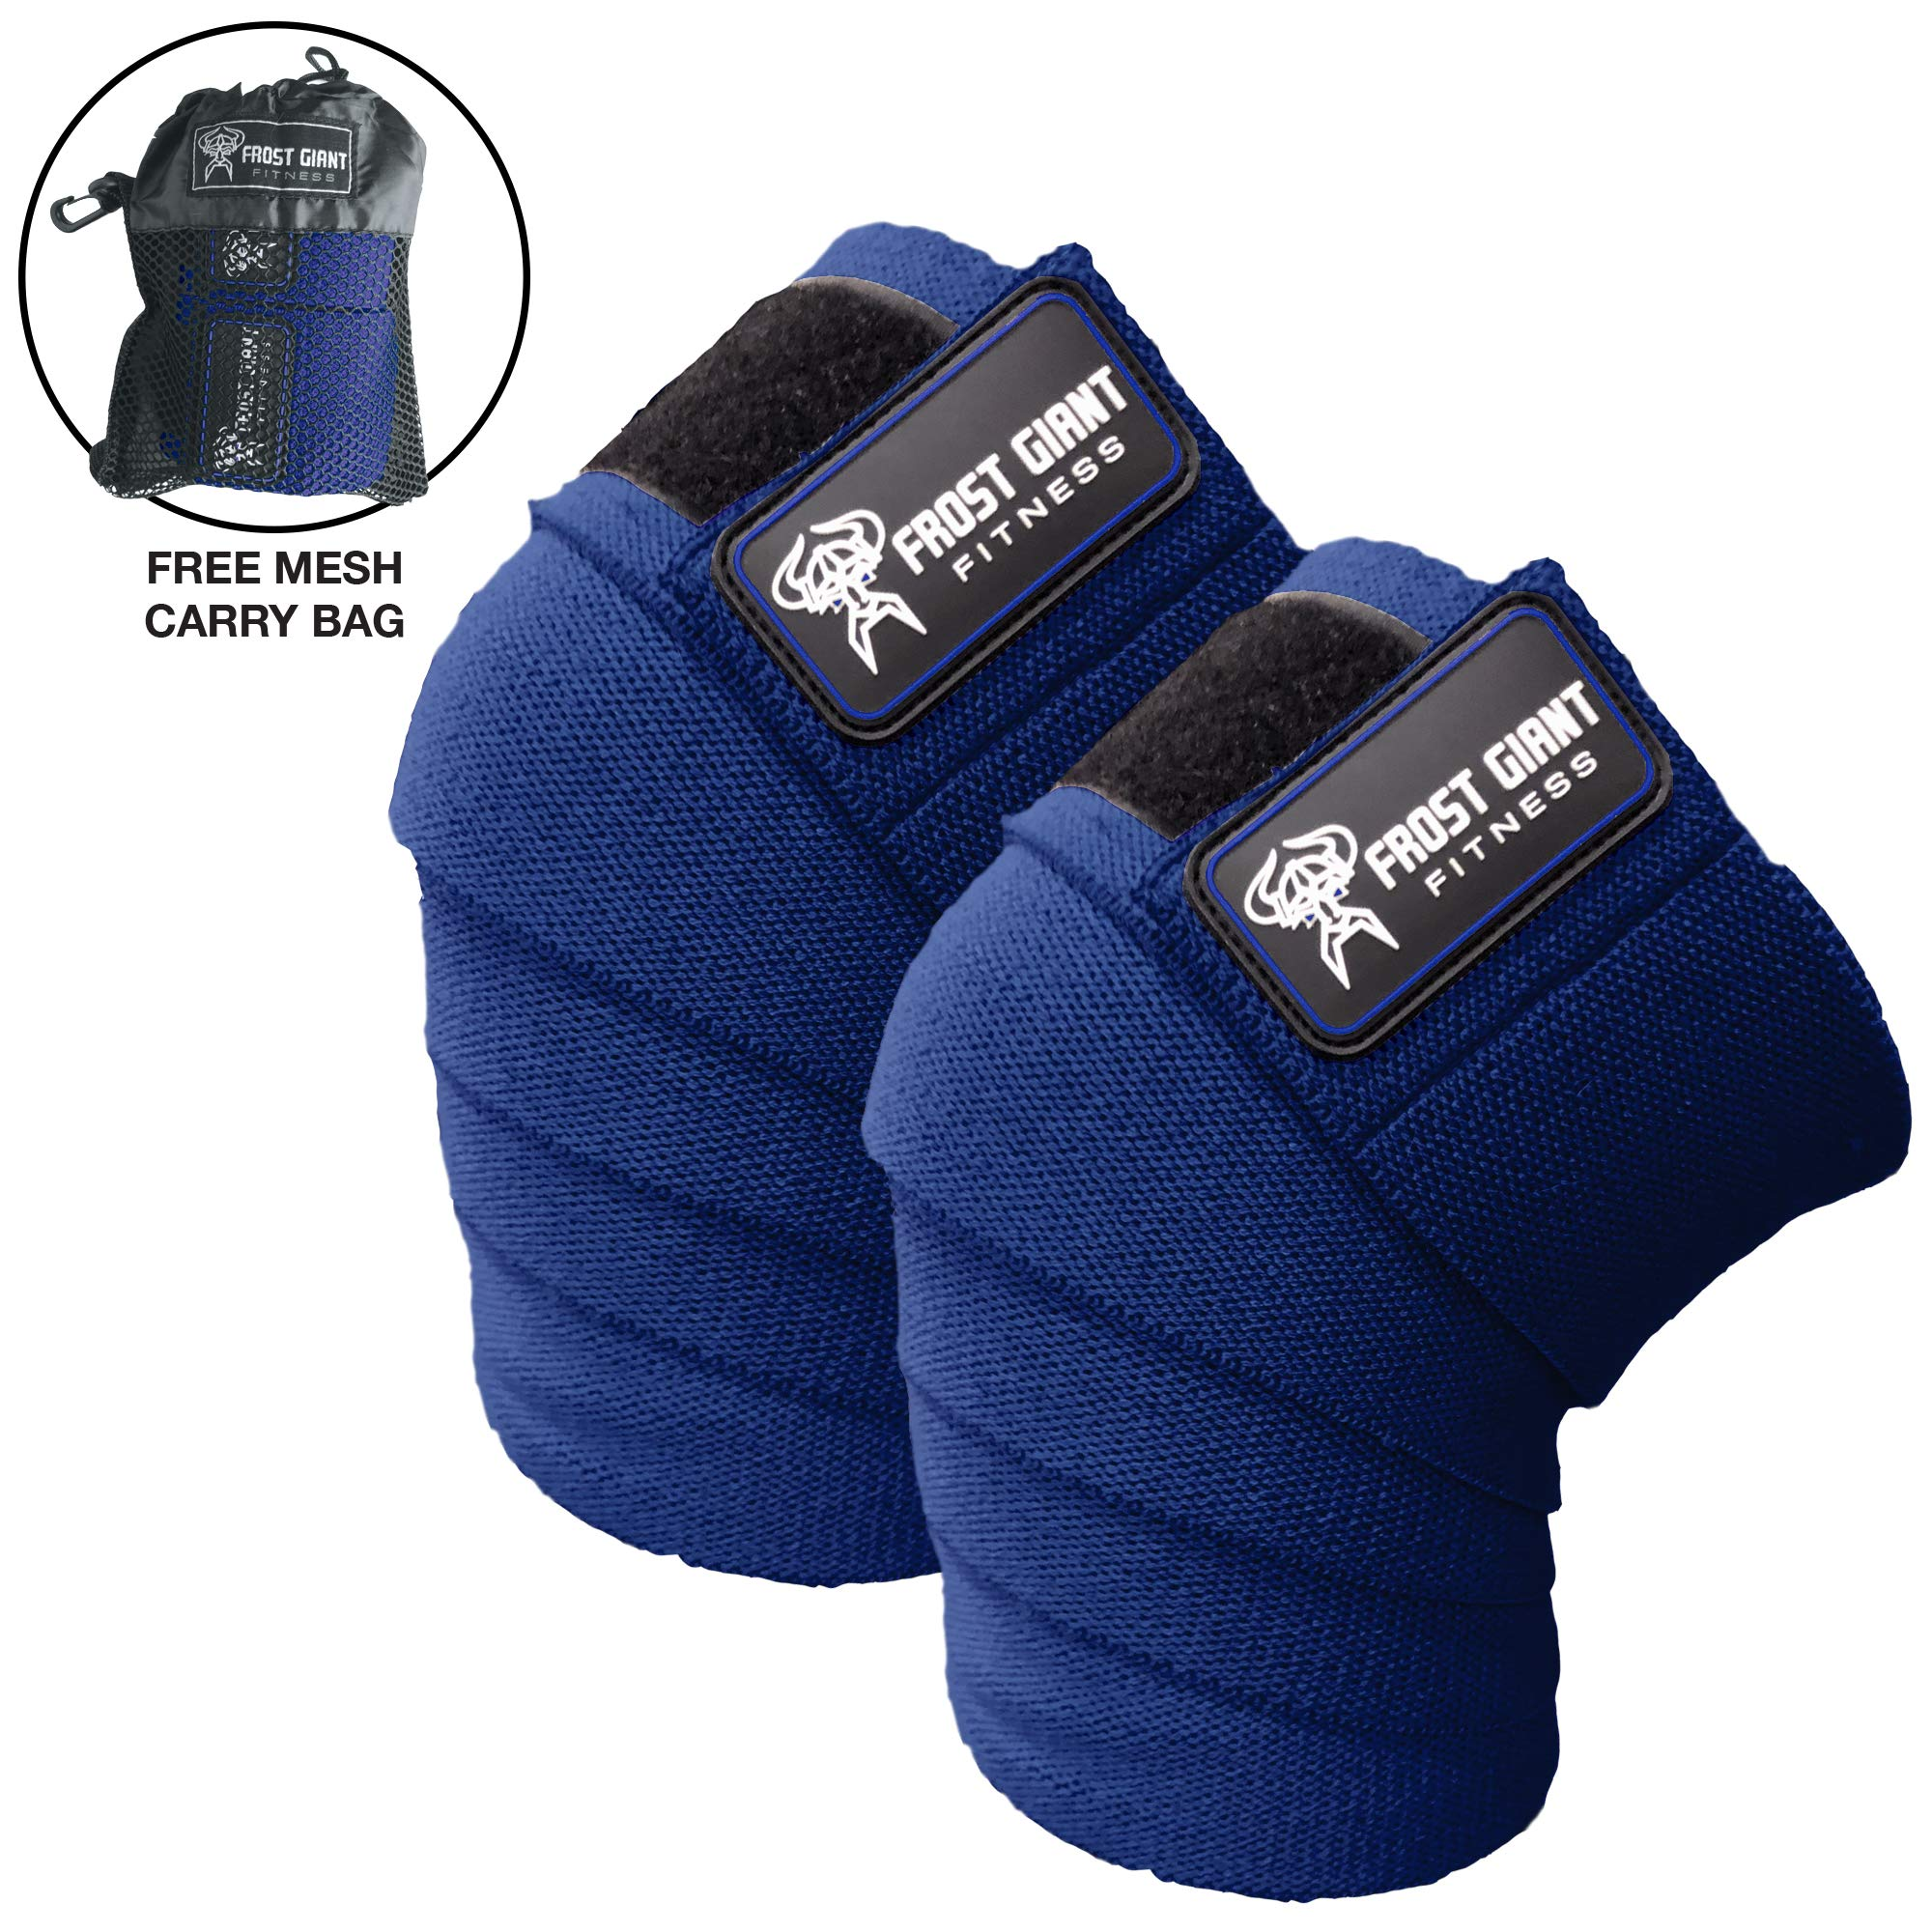 Frost Giant Fitness: 80'' Knee Wraps Set for Weightlifting, Bodybuilding, Lifting and Gym Workouts - Heavy Duty Exercising Knee Compression & Elastic Support for Men & Women. (Blue)